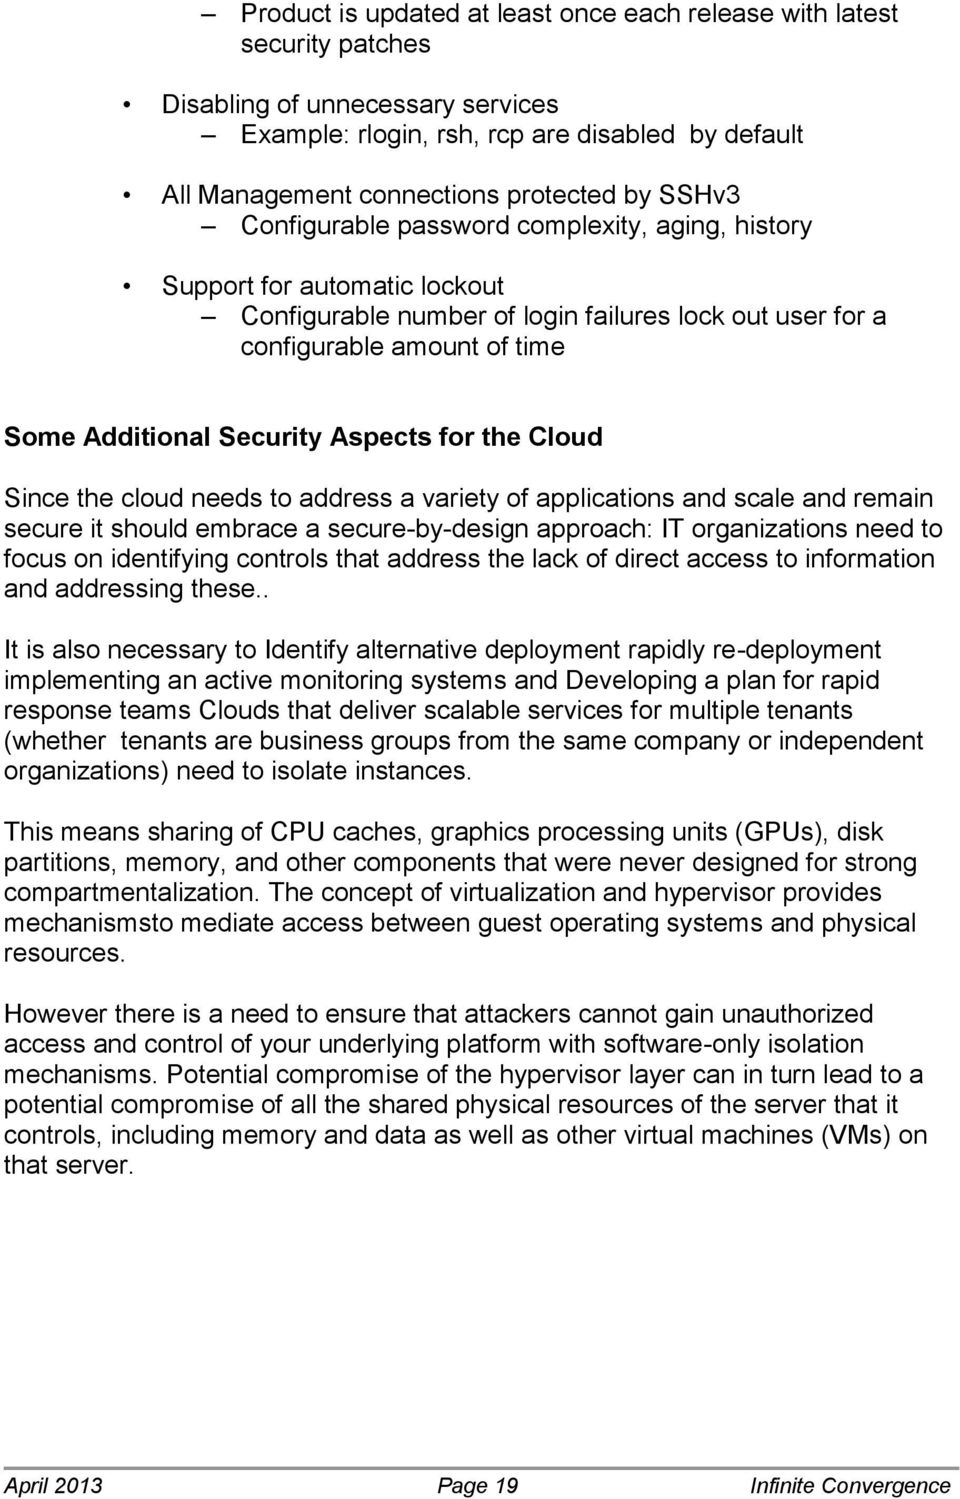 Aspects for the Cloud Since the cloud needs to address a variety of applications and scale and remain secure it should embrace a secure-by-design approach: IT organizations need to focus on